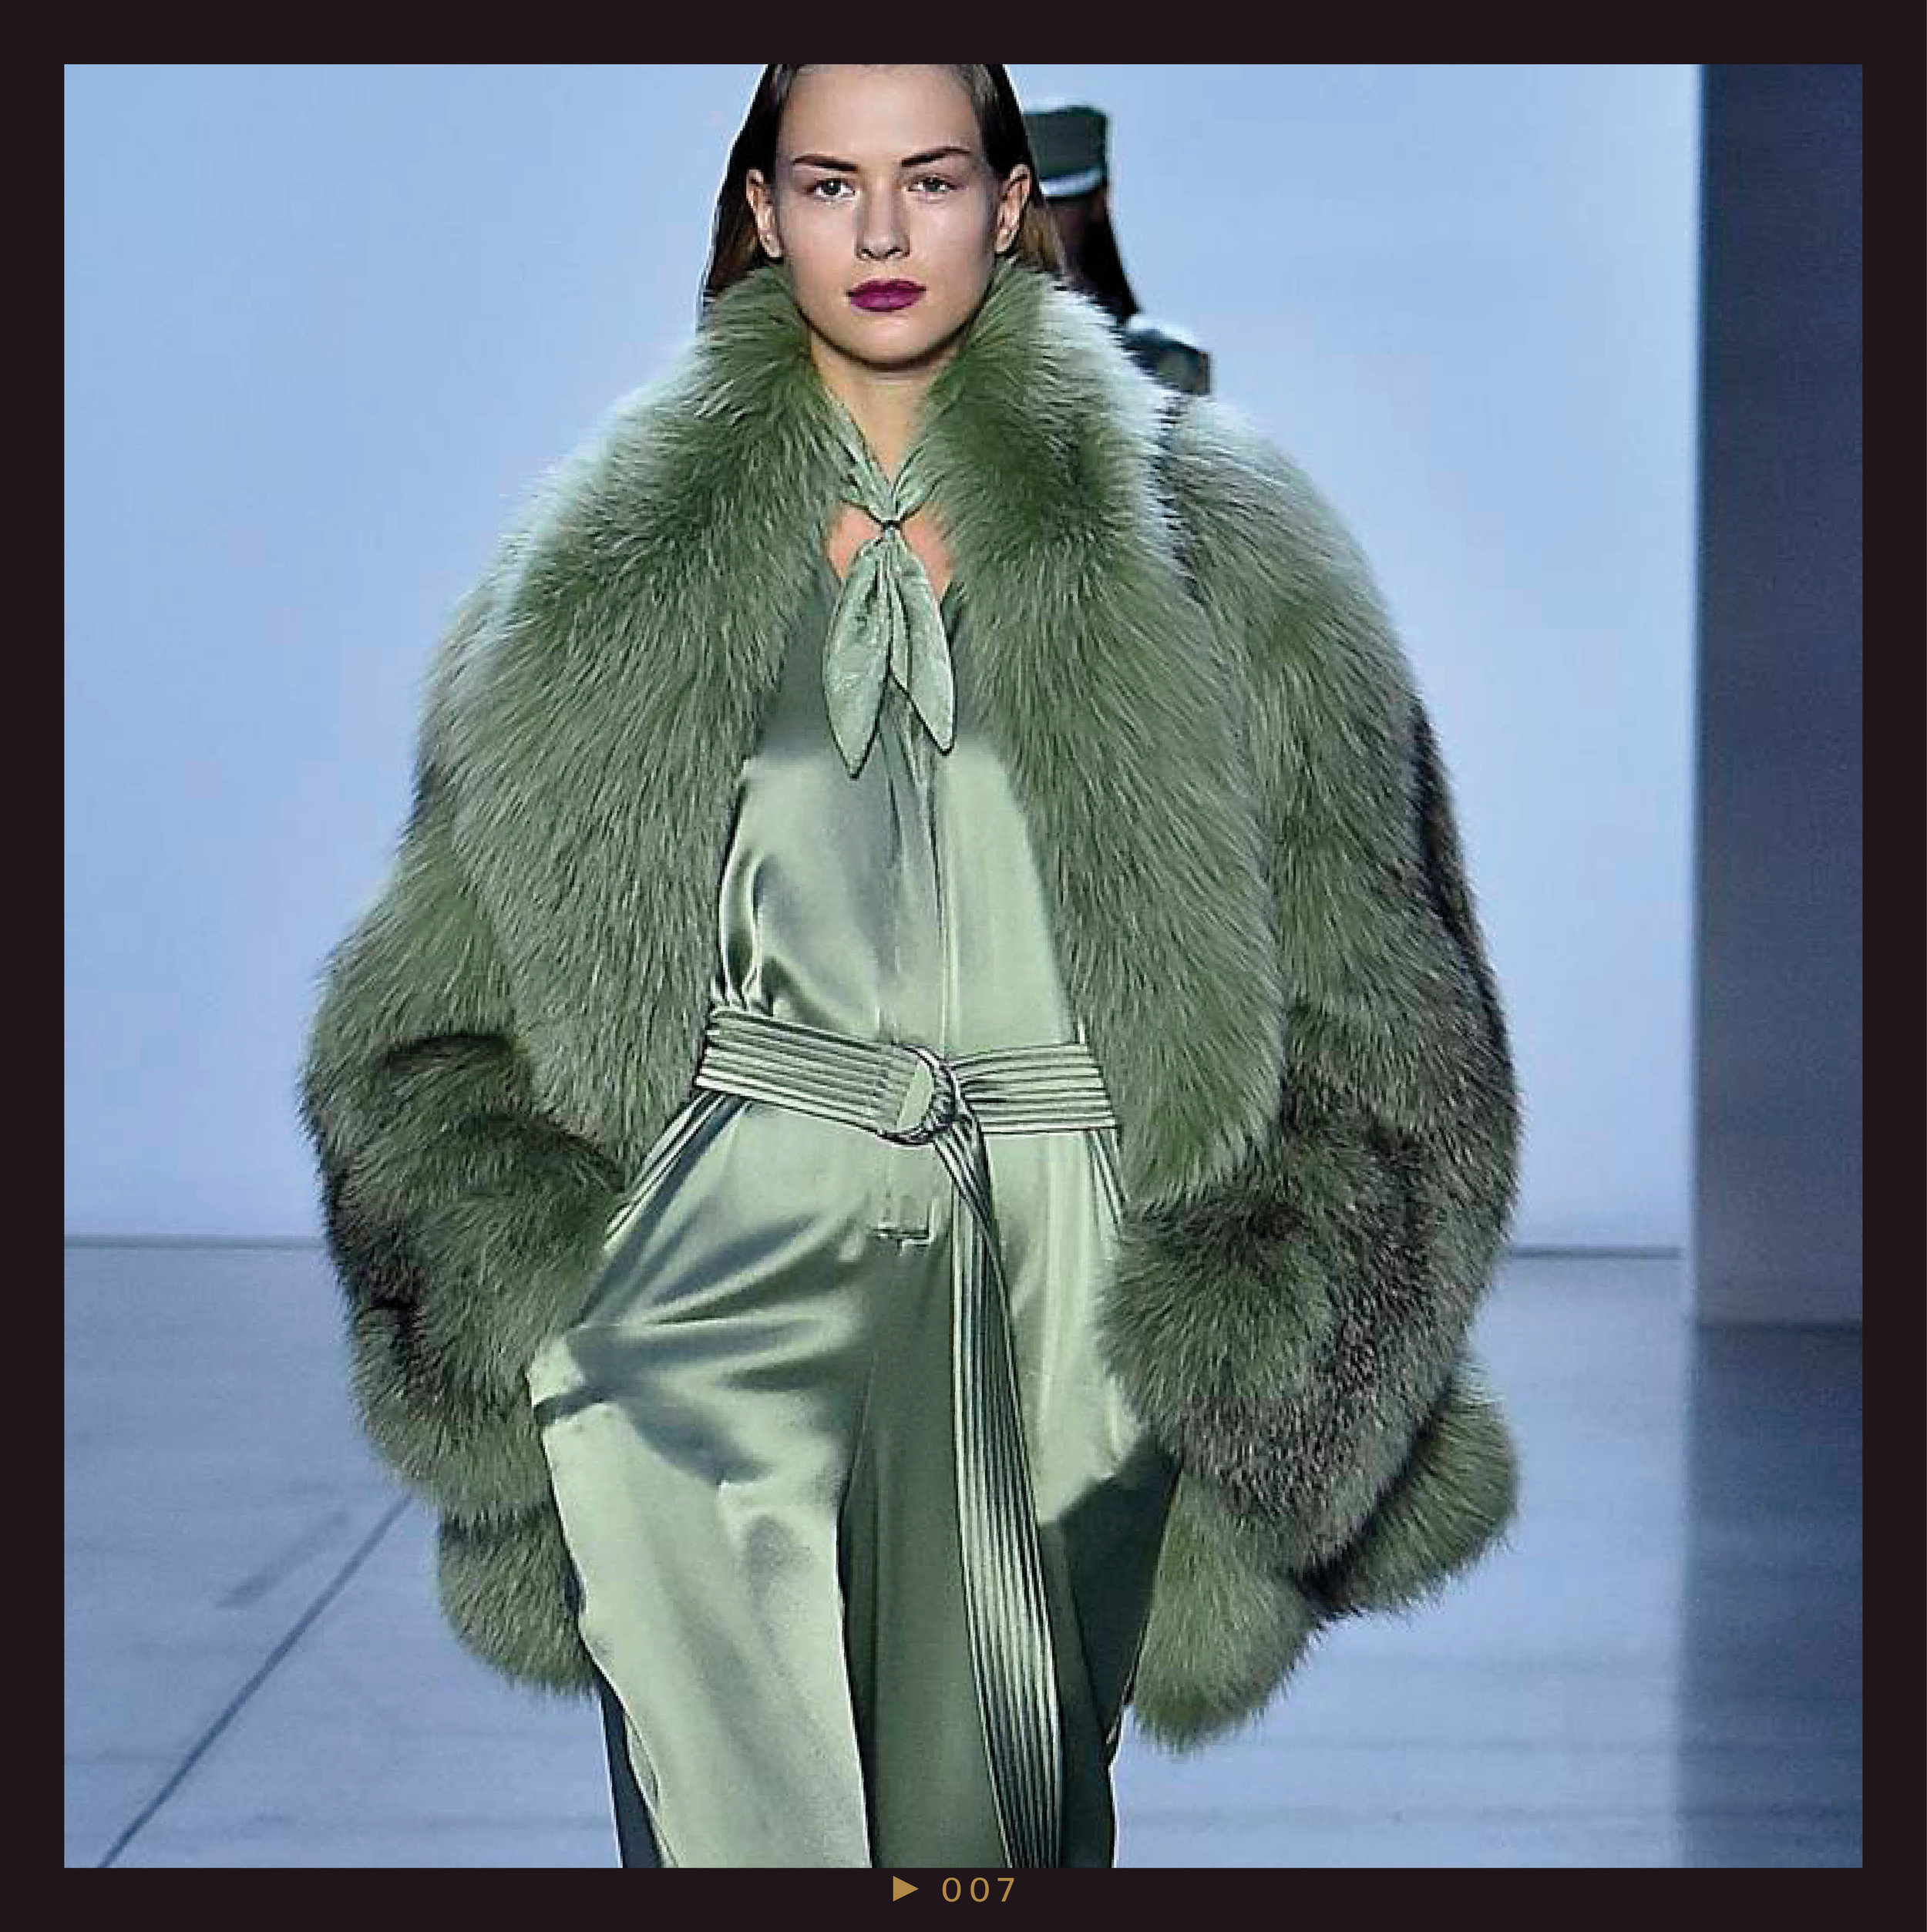 Pistachio - Call it sage green, pistachio, or mint, this verdant hue was seen on models from head-to-toe on the runways, and we've been spotting fashion girls sporting the sweet shade on the streets all season. It's the perfect shade to wear for spring, but expect to see the color dominating our feeds by fall.